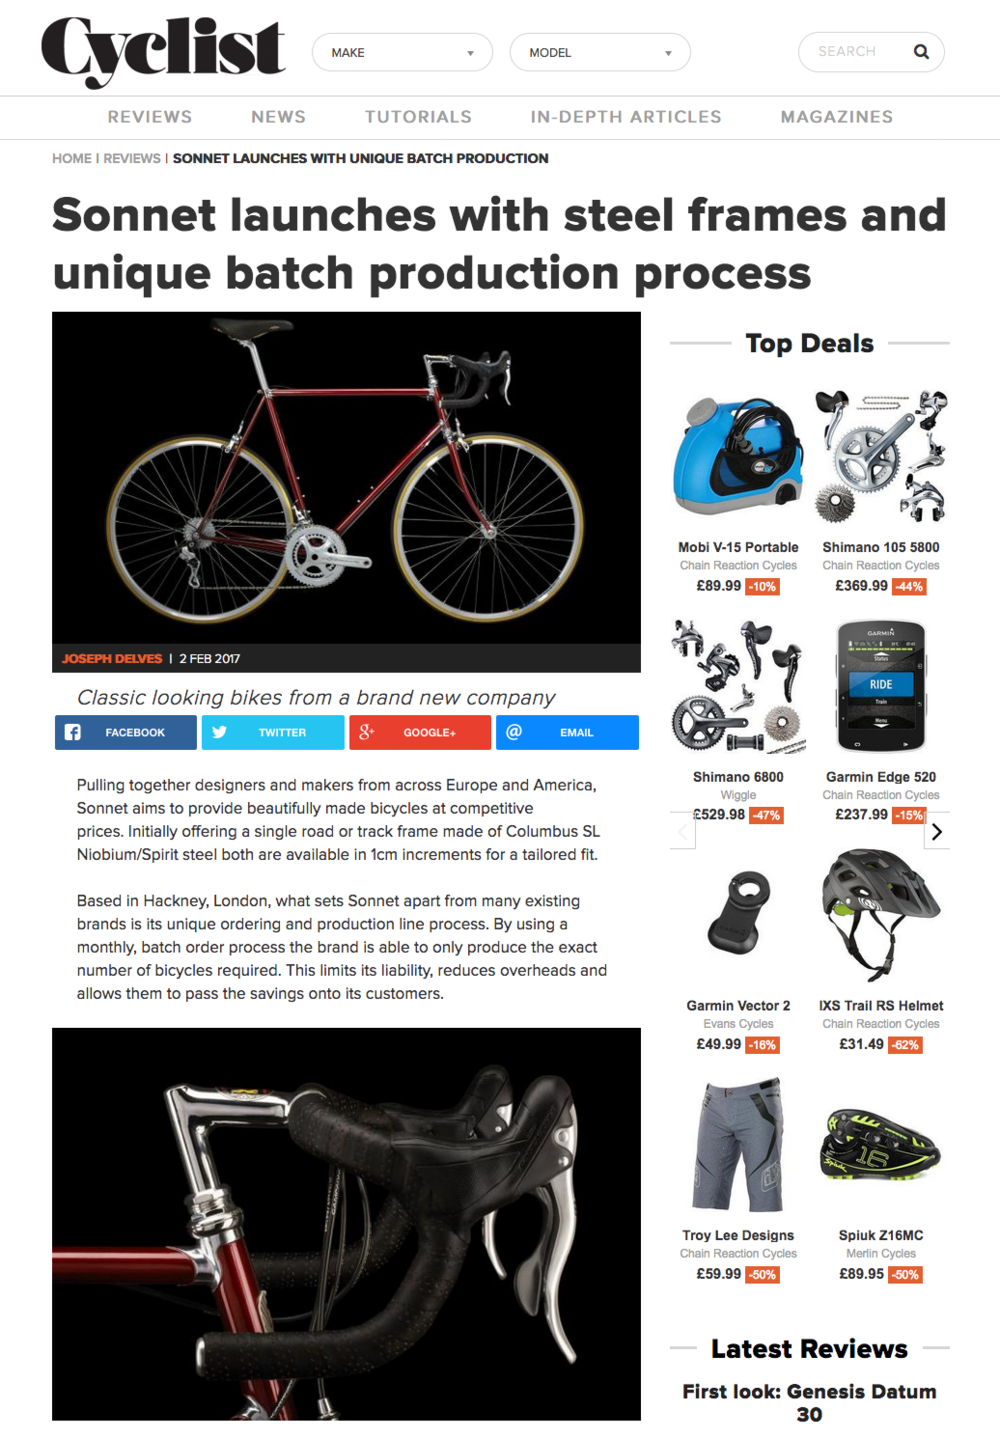 Cyclist Magazine, Review section, February 2nd, 2017  http://bit.ly/2rmiOzv